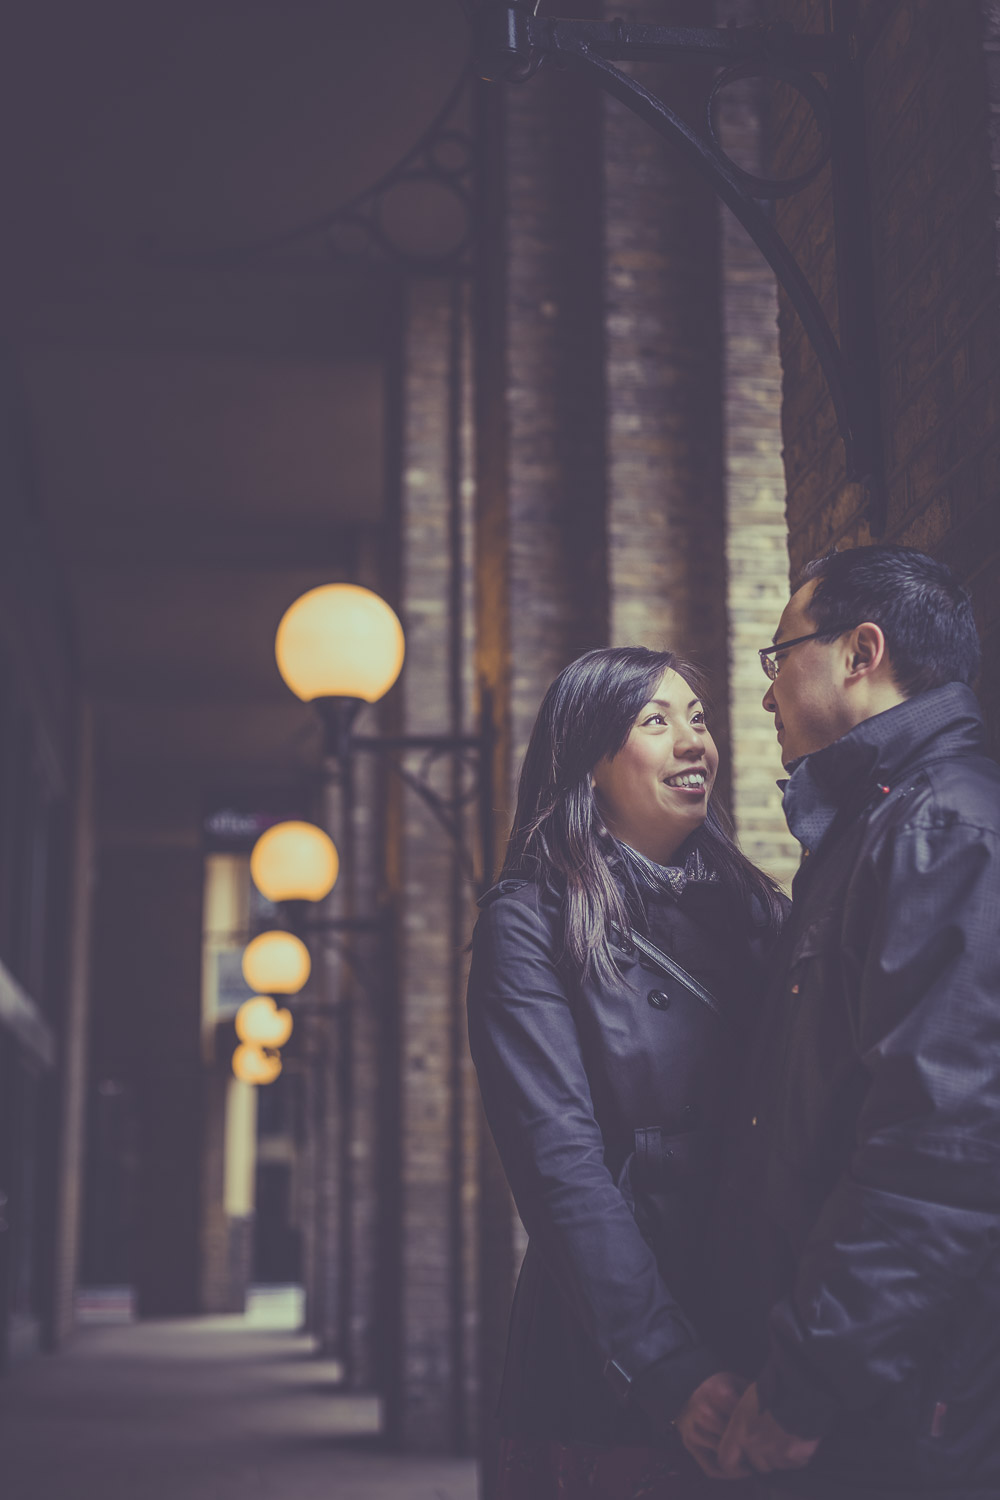 pre-wedding-engagement-session-in-london-portchester-and-notting-hill-hampshire-wedding-photographer-52.jpg